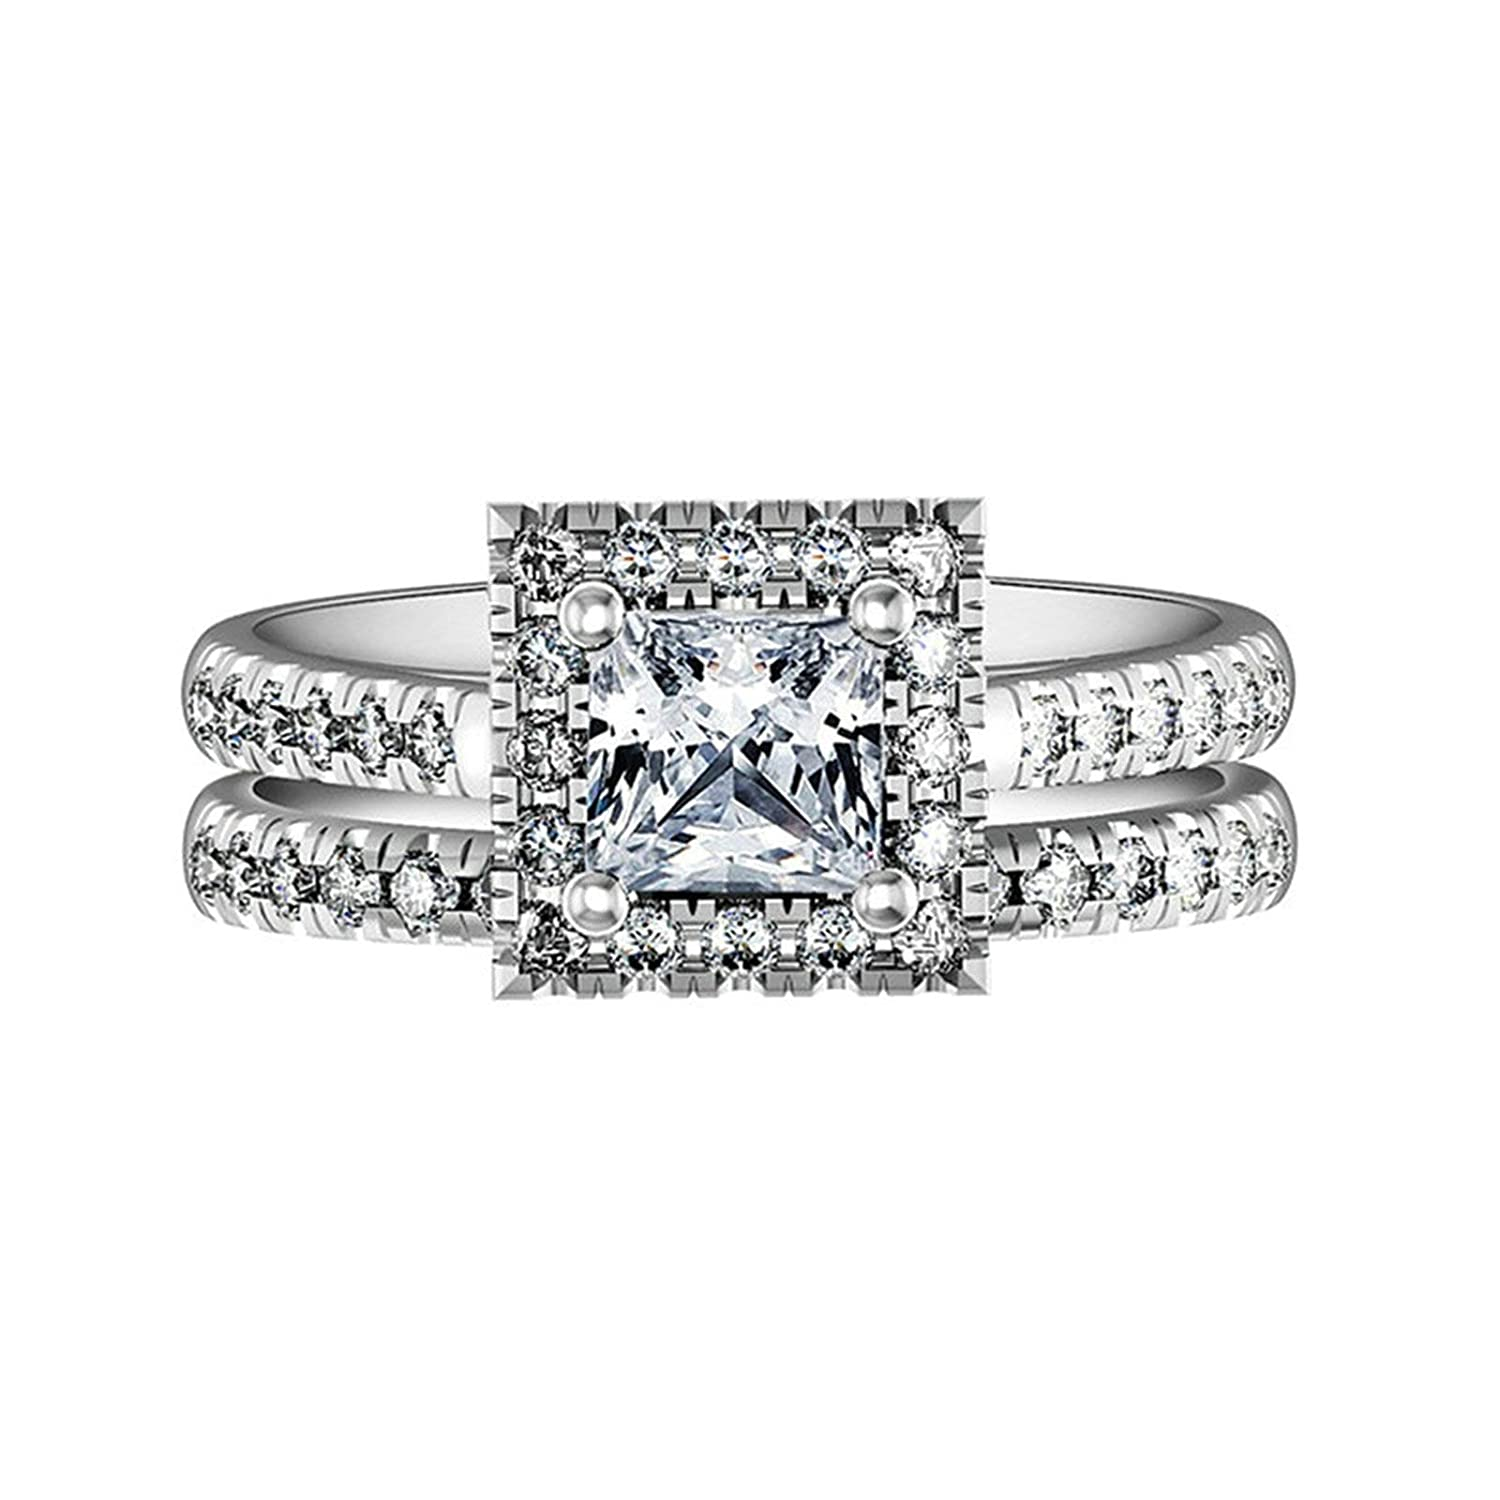 76d0495291ba3 Aooaz Jewelry Wedding Ring Silver Material 4 Prong Square Ring for ...